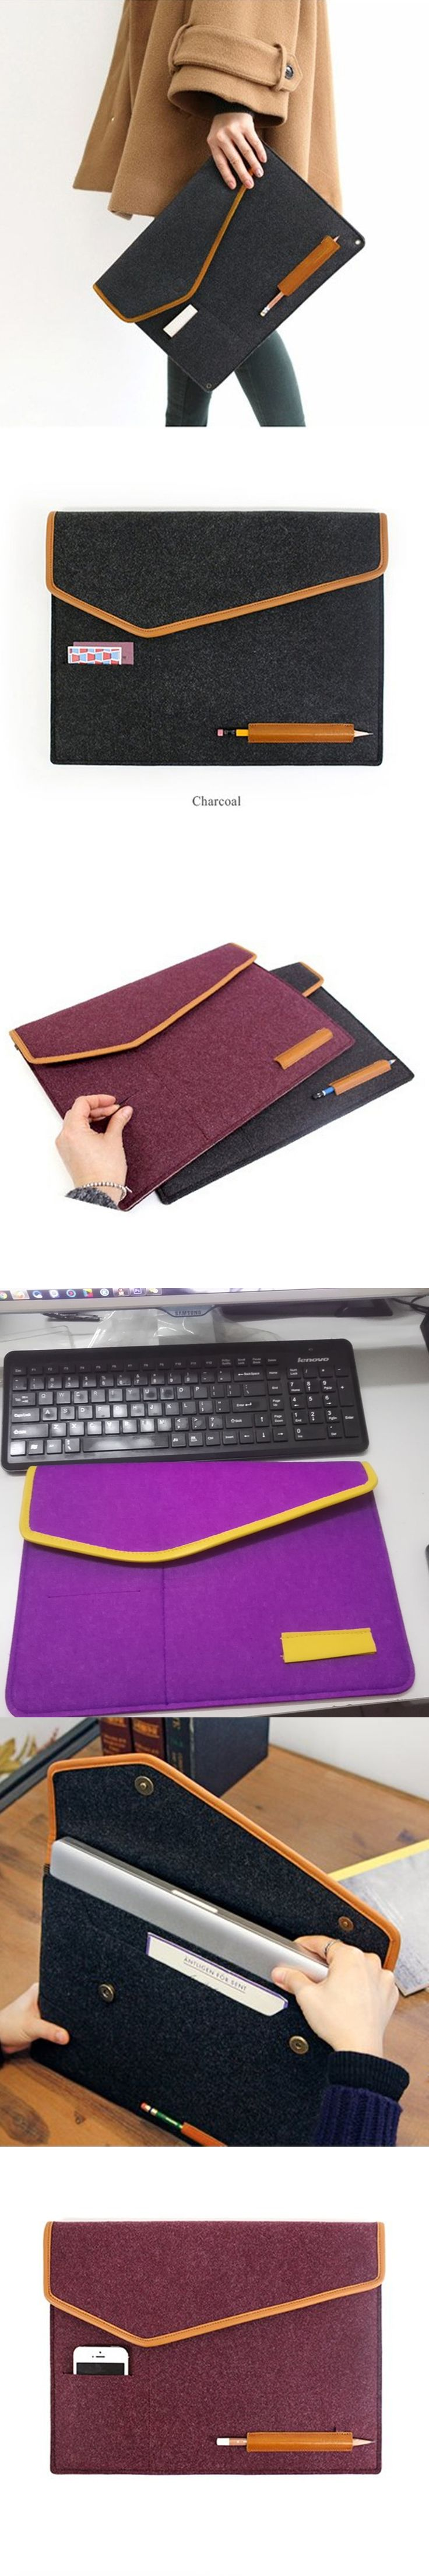 Wool Felt Envelope Cover 12 13 14 Inch Protective Laptop Bag Sleeve Case for Apple Macbook Air Pro Retina 11.6 13.3 Notebook Bag